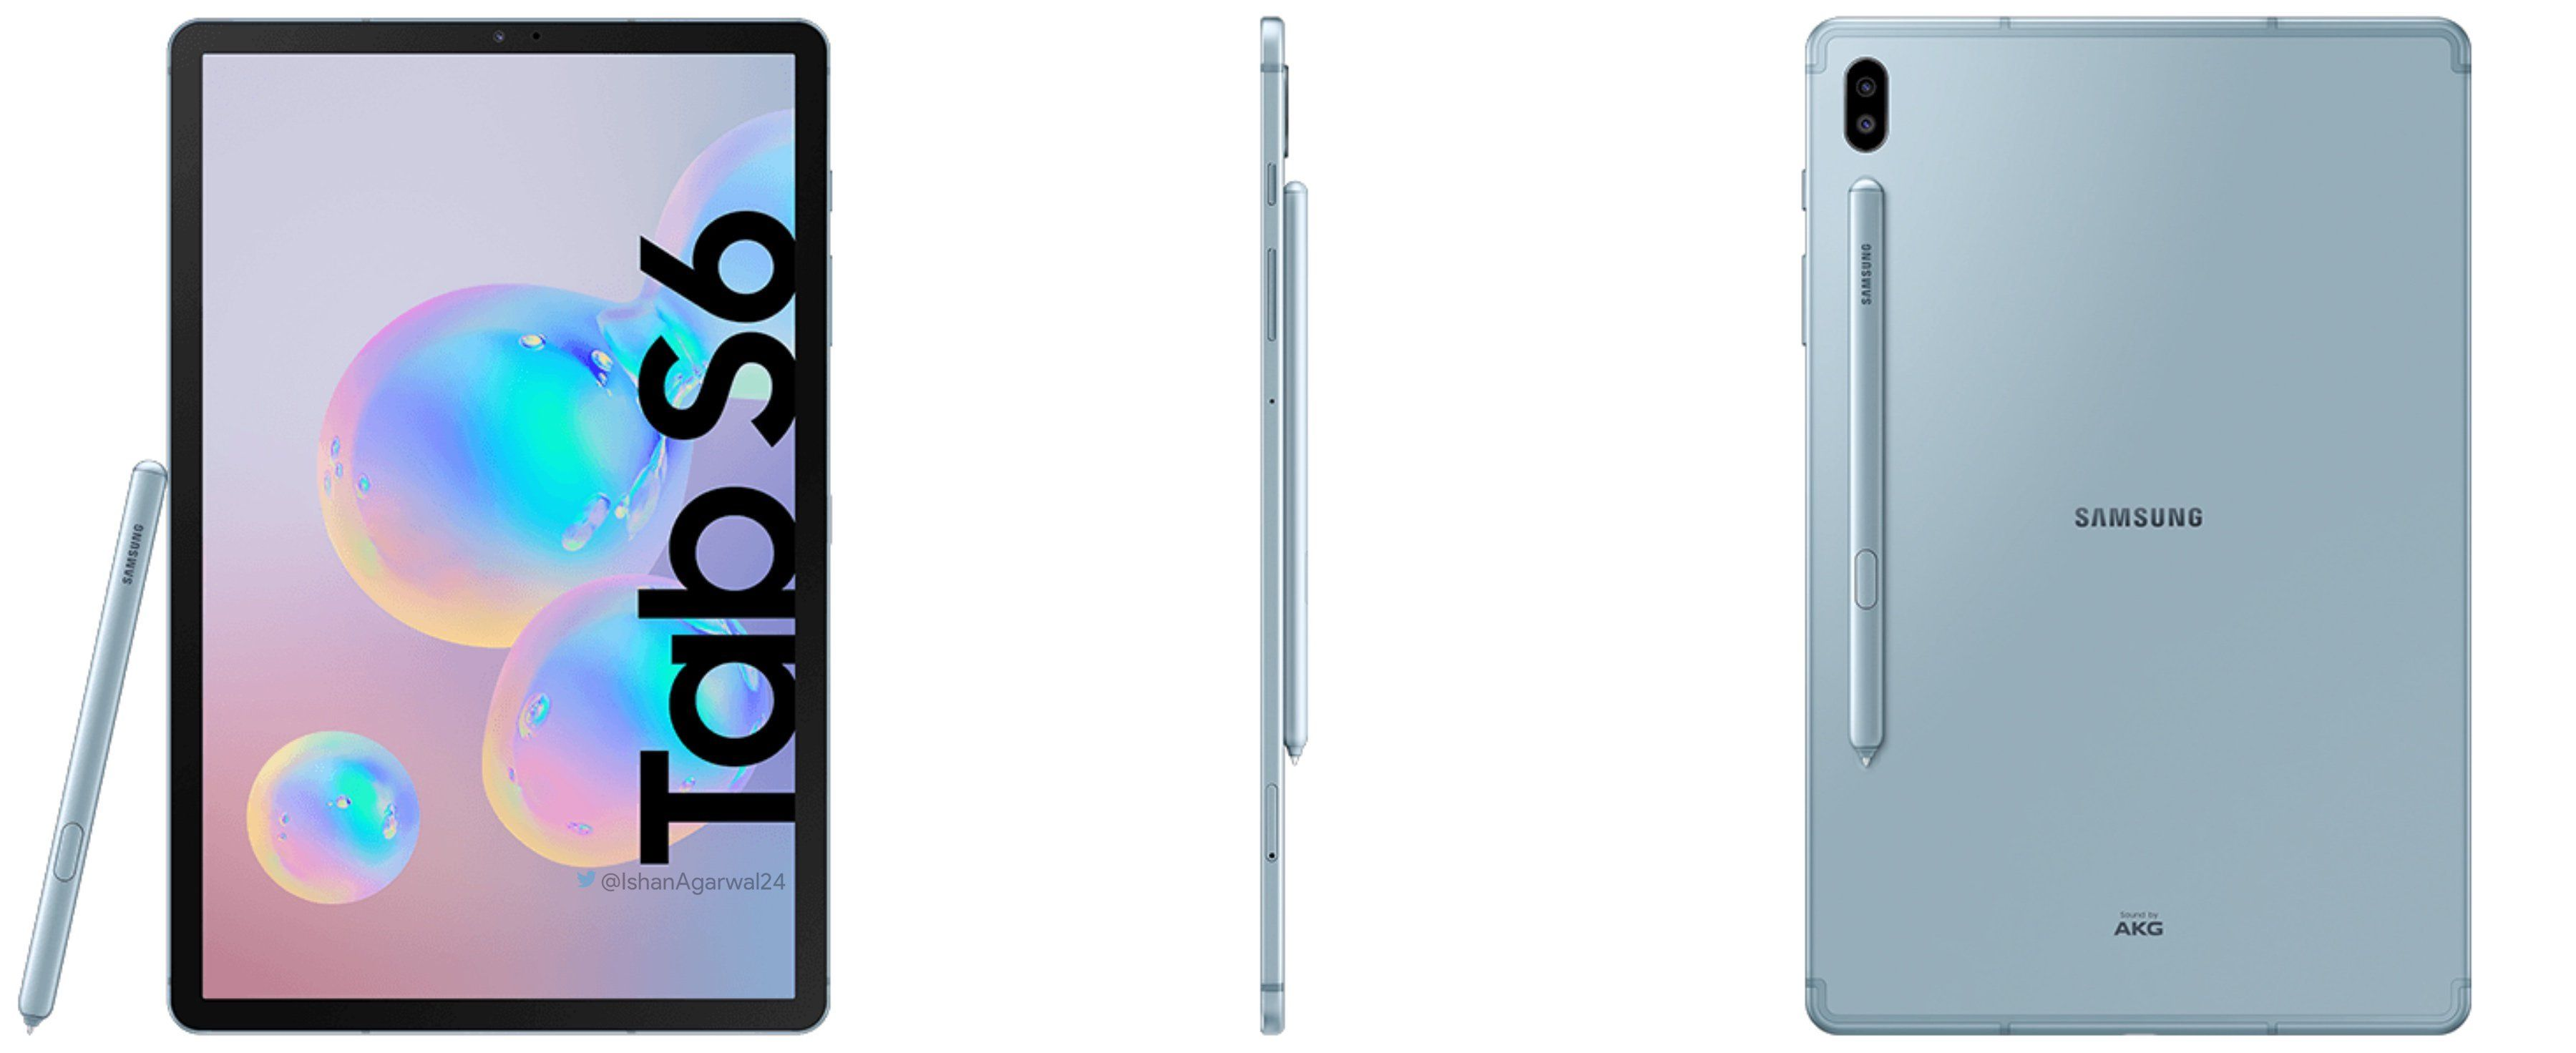 Samsung Galaxy Tab S6 will have S pen and Air Mouse feature: Specifications leaked